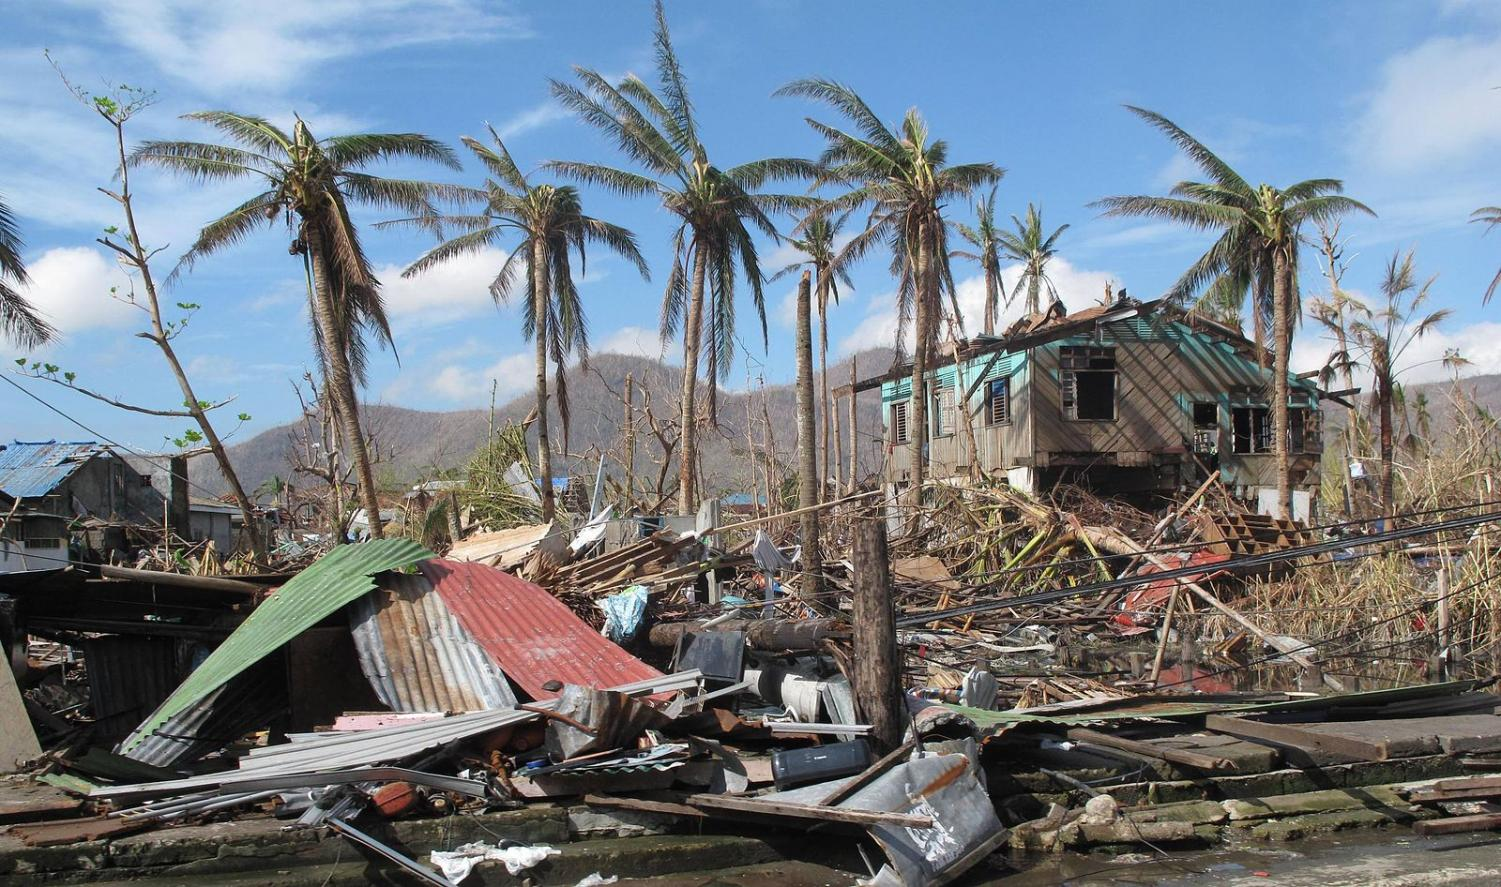 A look at the damage from the typhoon. Many are missing and many people have been killed.